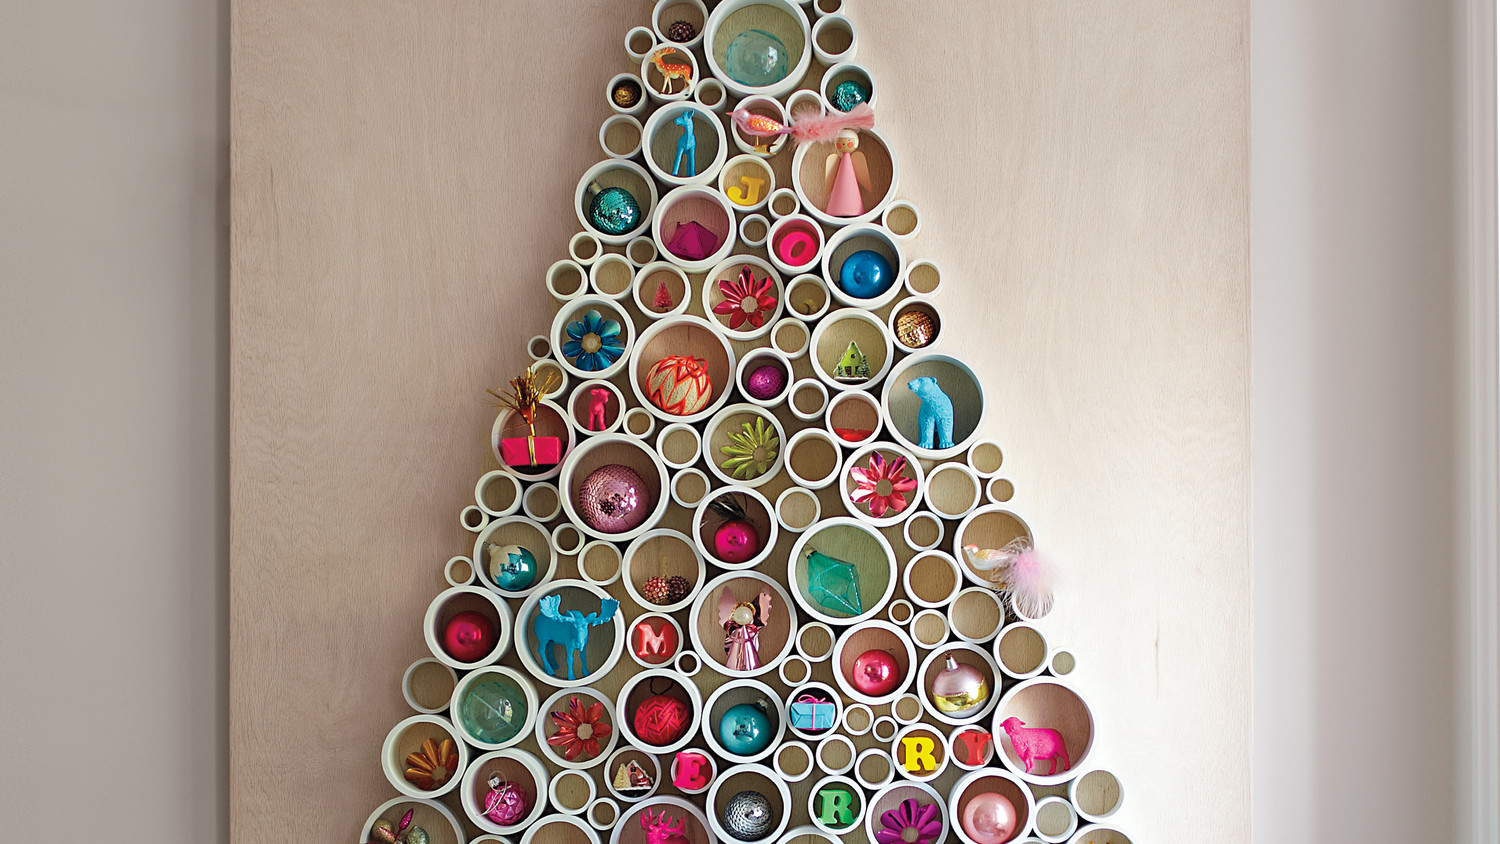 Decoration De Noel Facile A Faire Soi Meme Pvc-pipe Tree | Martha Stewart